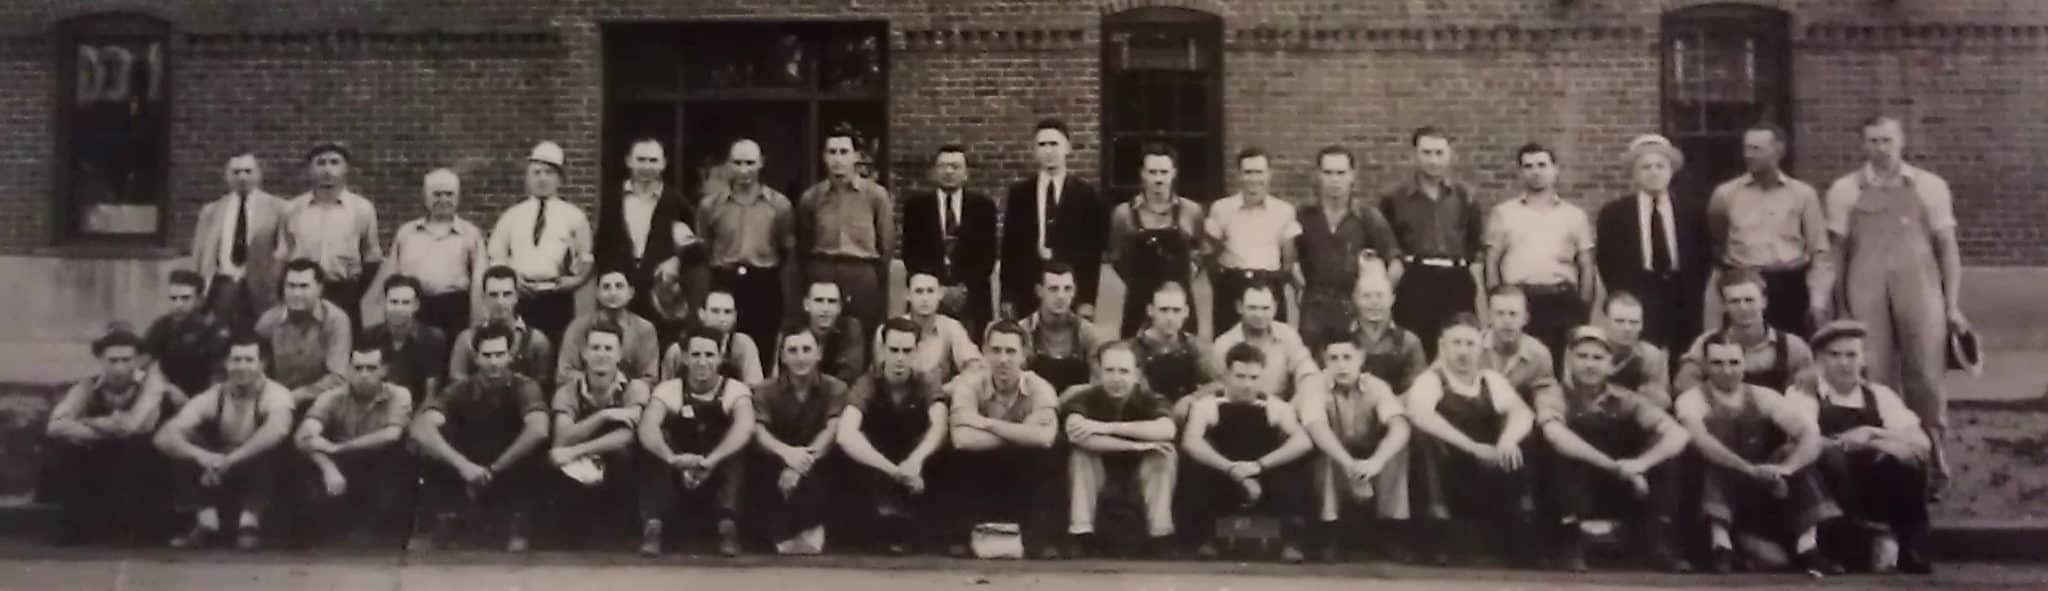 Owners and employees pose for a group photo outside Goldberg Brothers headquarters near downtown Denver, July 18, 1939.